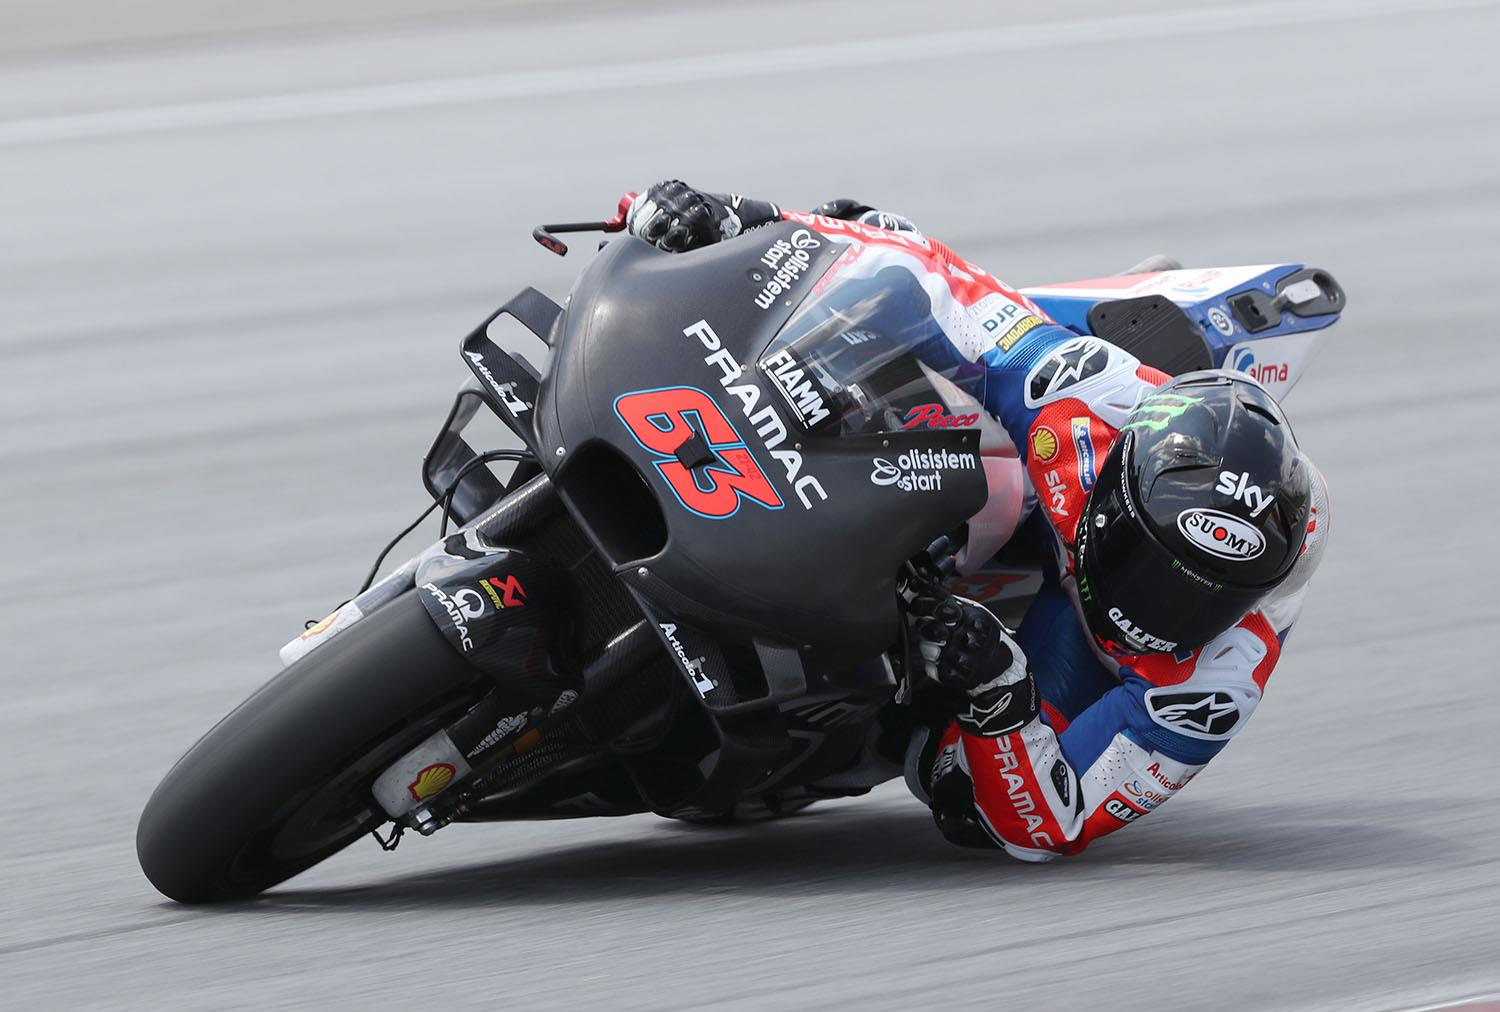 MotoGP: Second fastest Bagnaia still 'only at 65%'